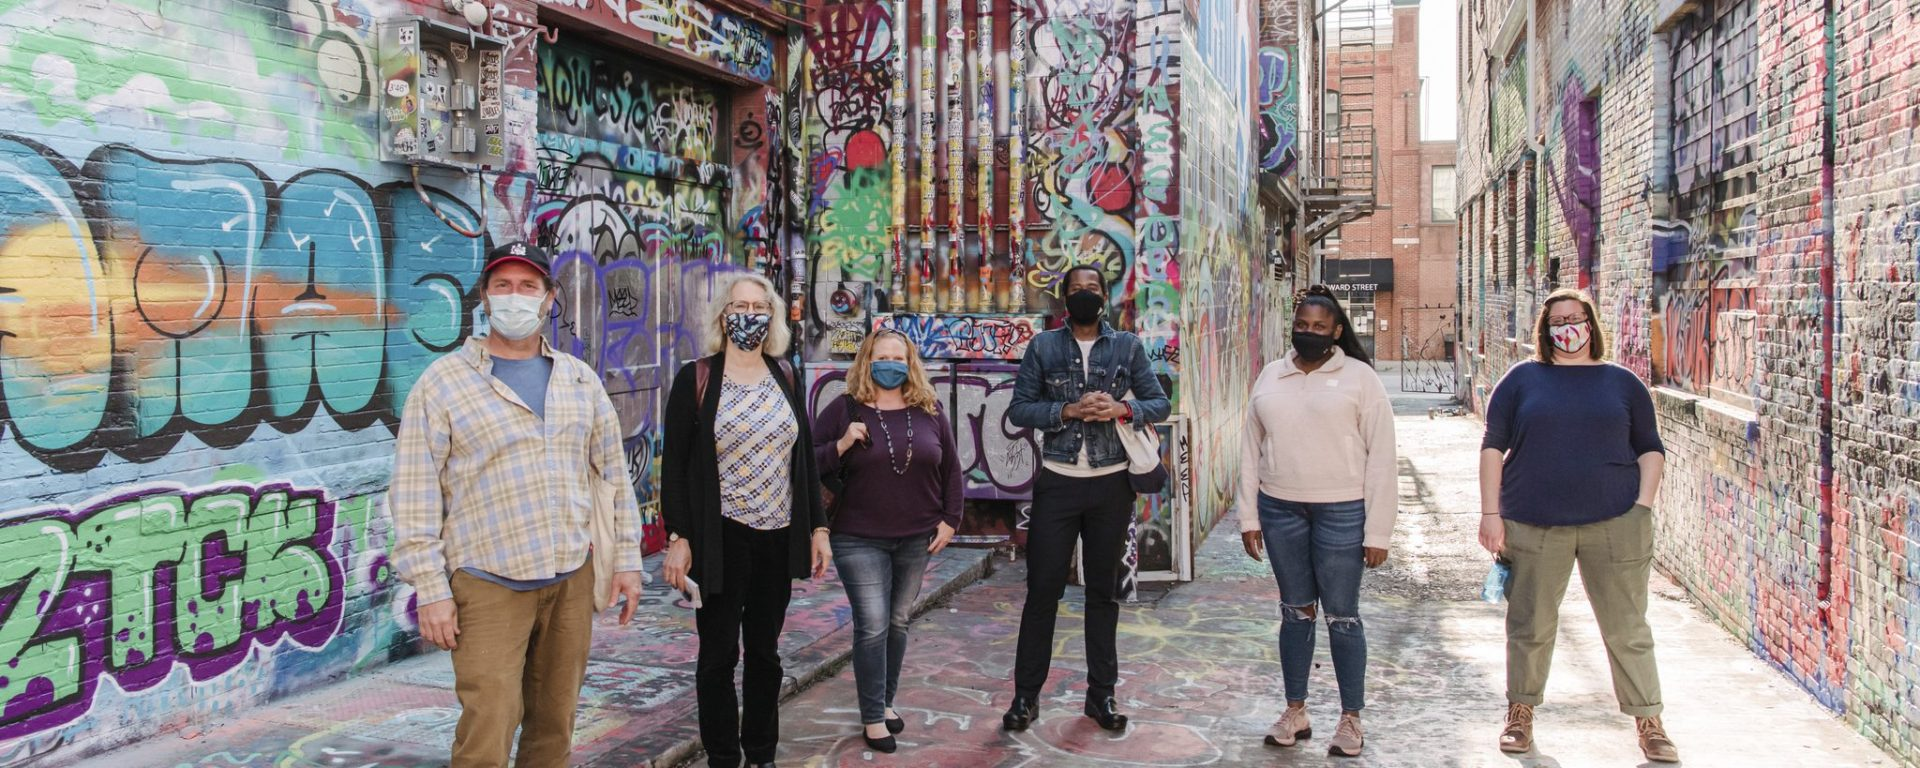 Six people, all wearing masks, standing in a road. The surrounding walls have graffiti on them.